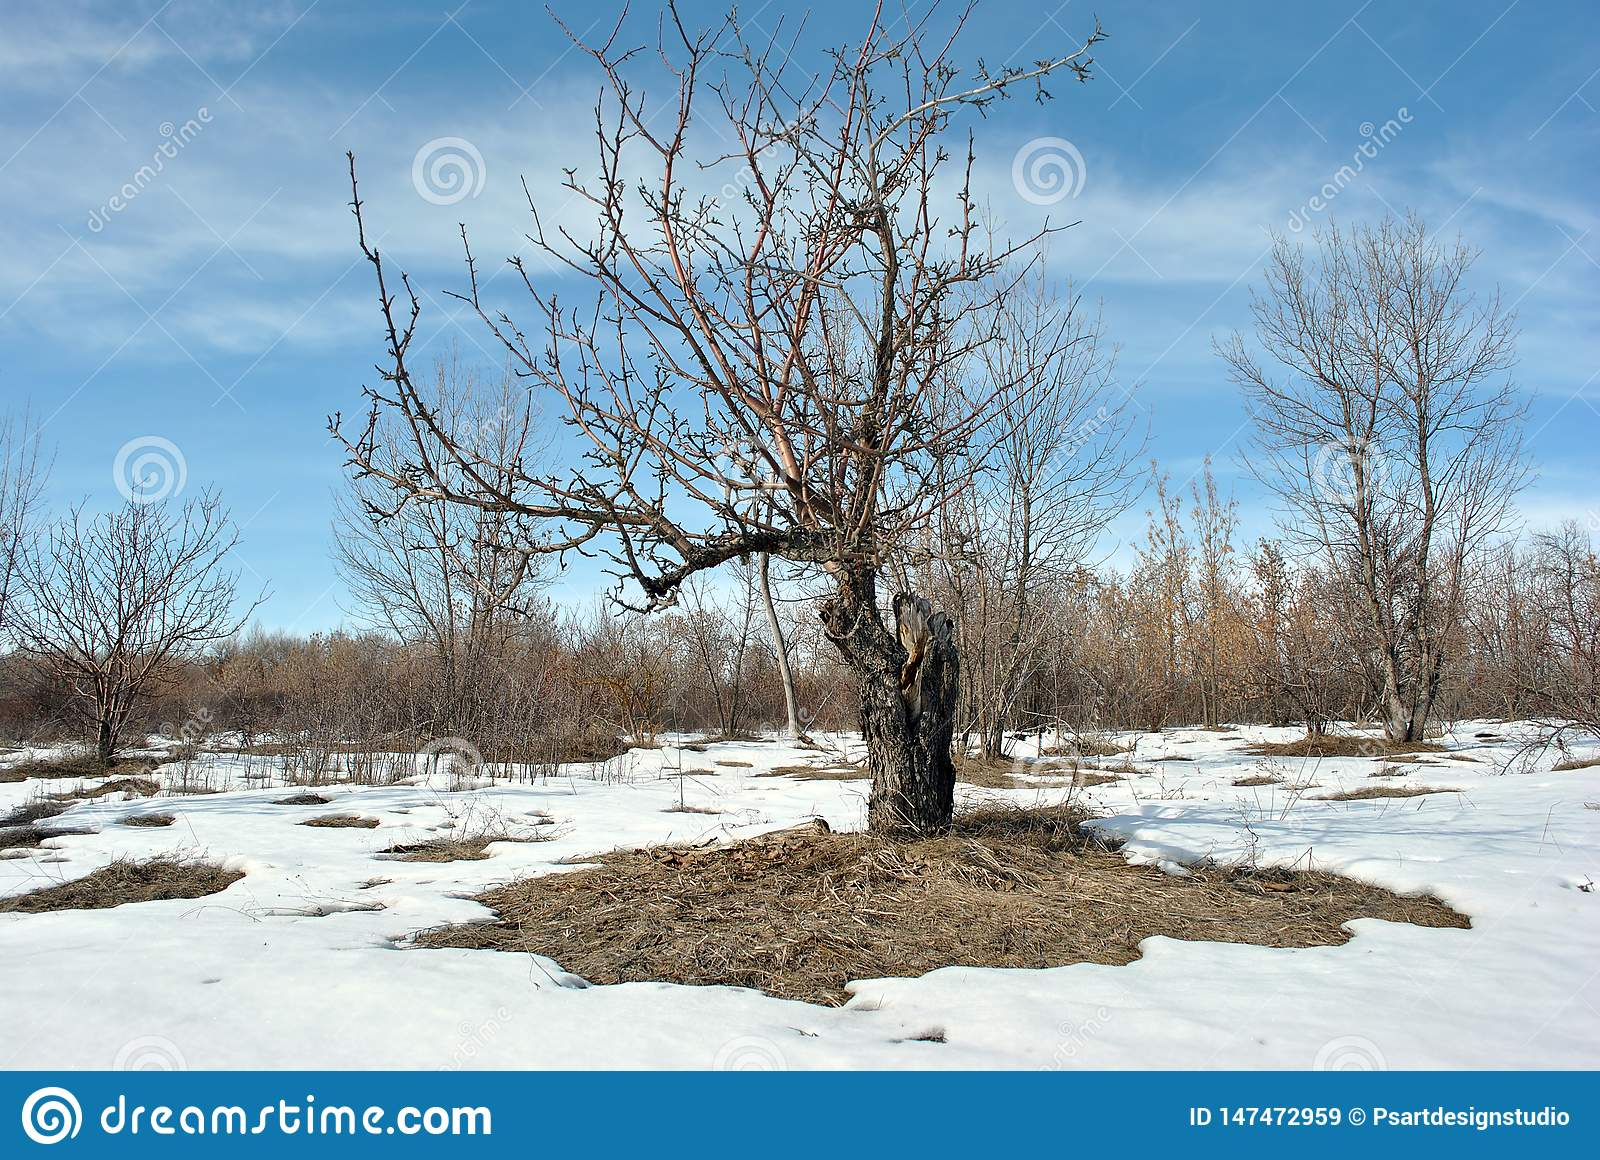 Old Apple Tree Without Leaves On Snowy Meadow With Bushes